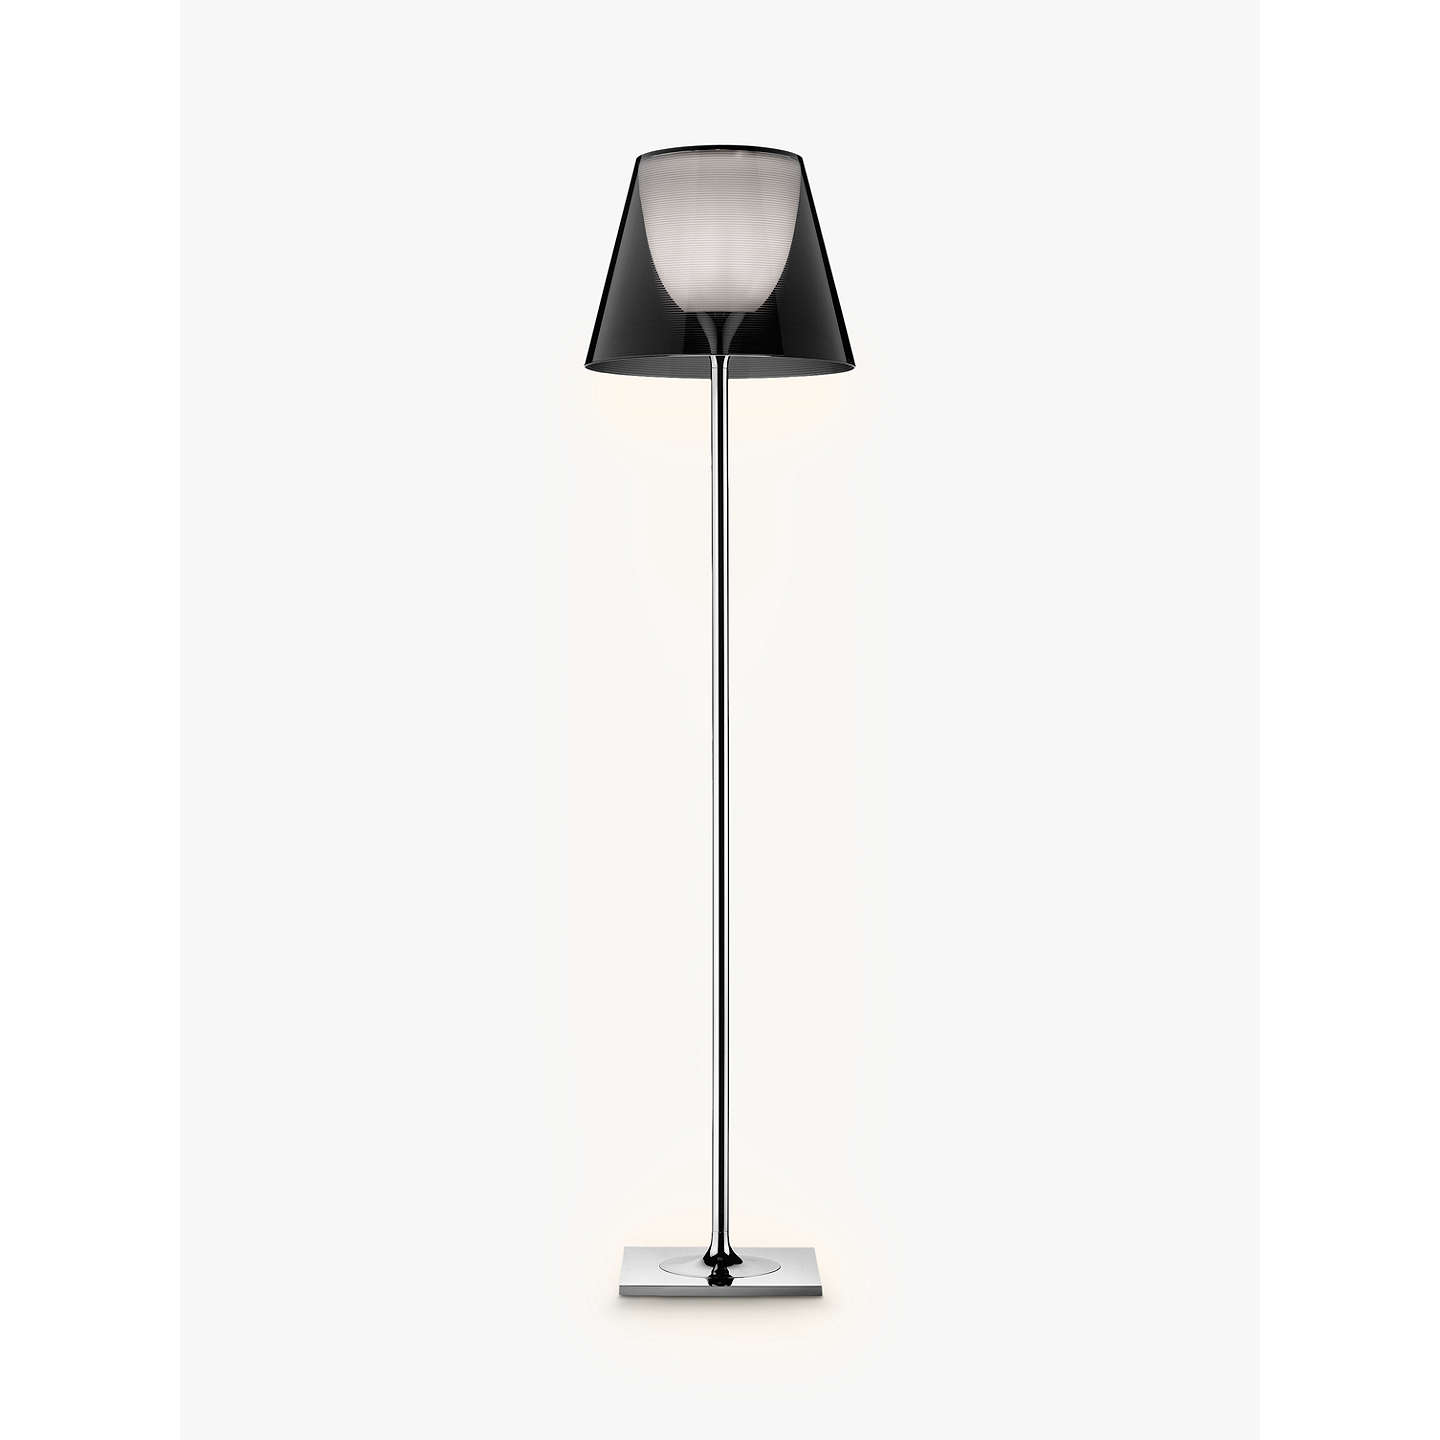 Flos ktribe f2 floor lamp smoke at john lewis buyflos ktribe f2 floor lamp smoke online at johnlewis aloadofball Choice Image